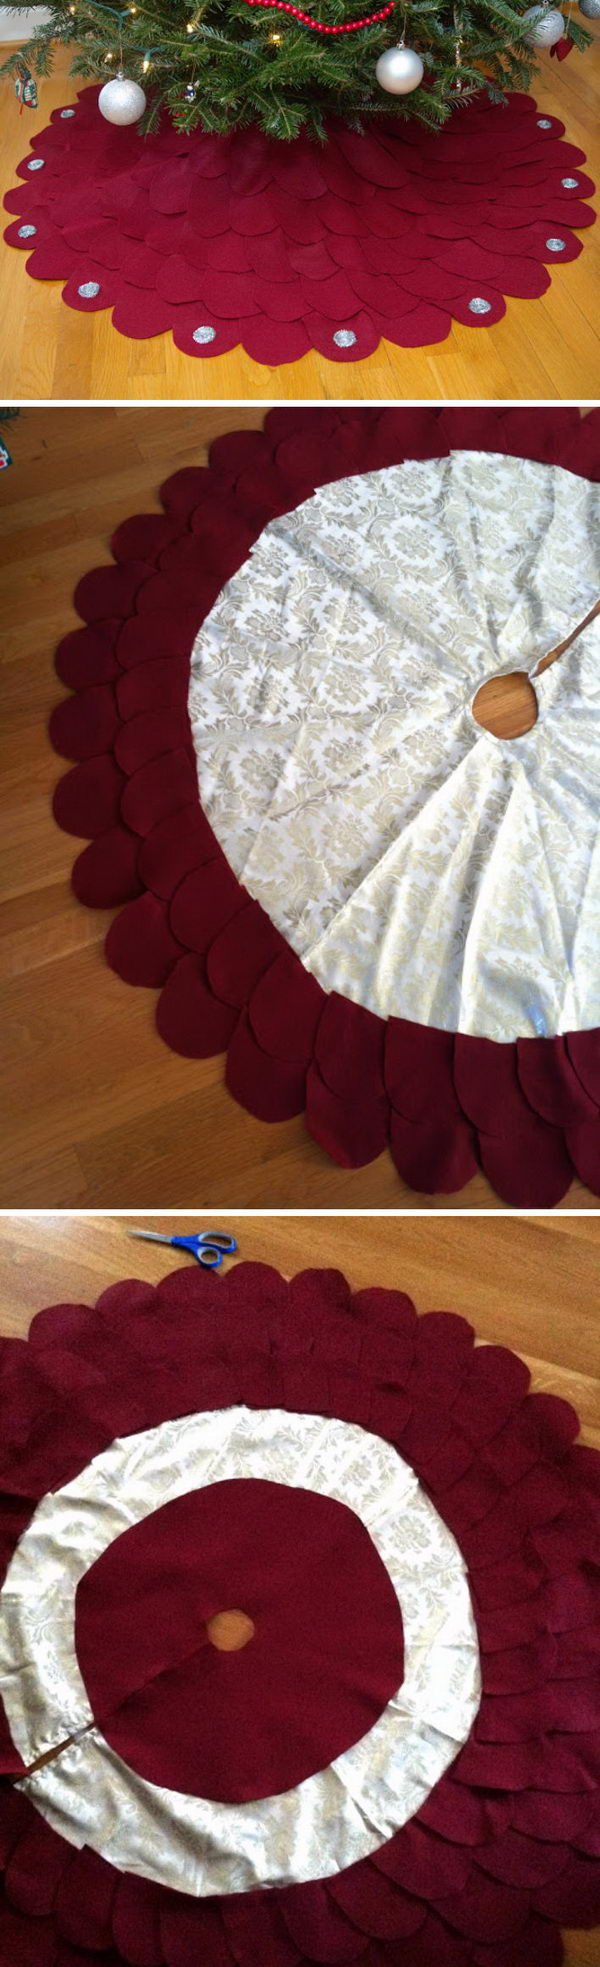 DIY Christmas Tree Skirt.